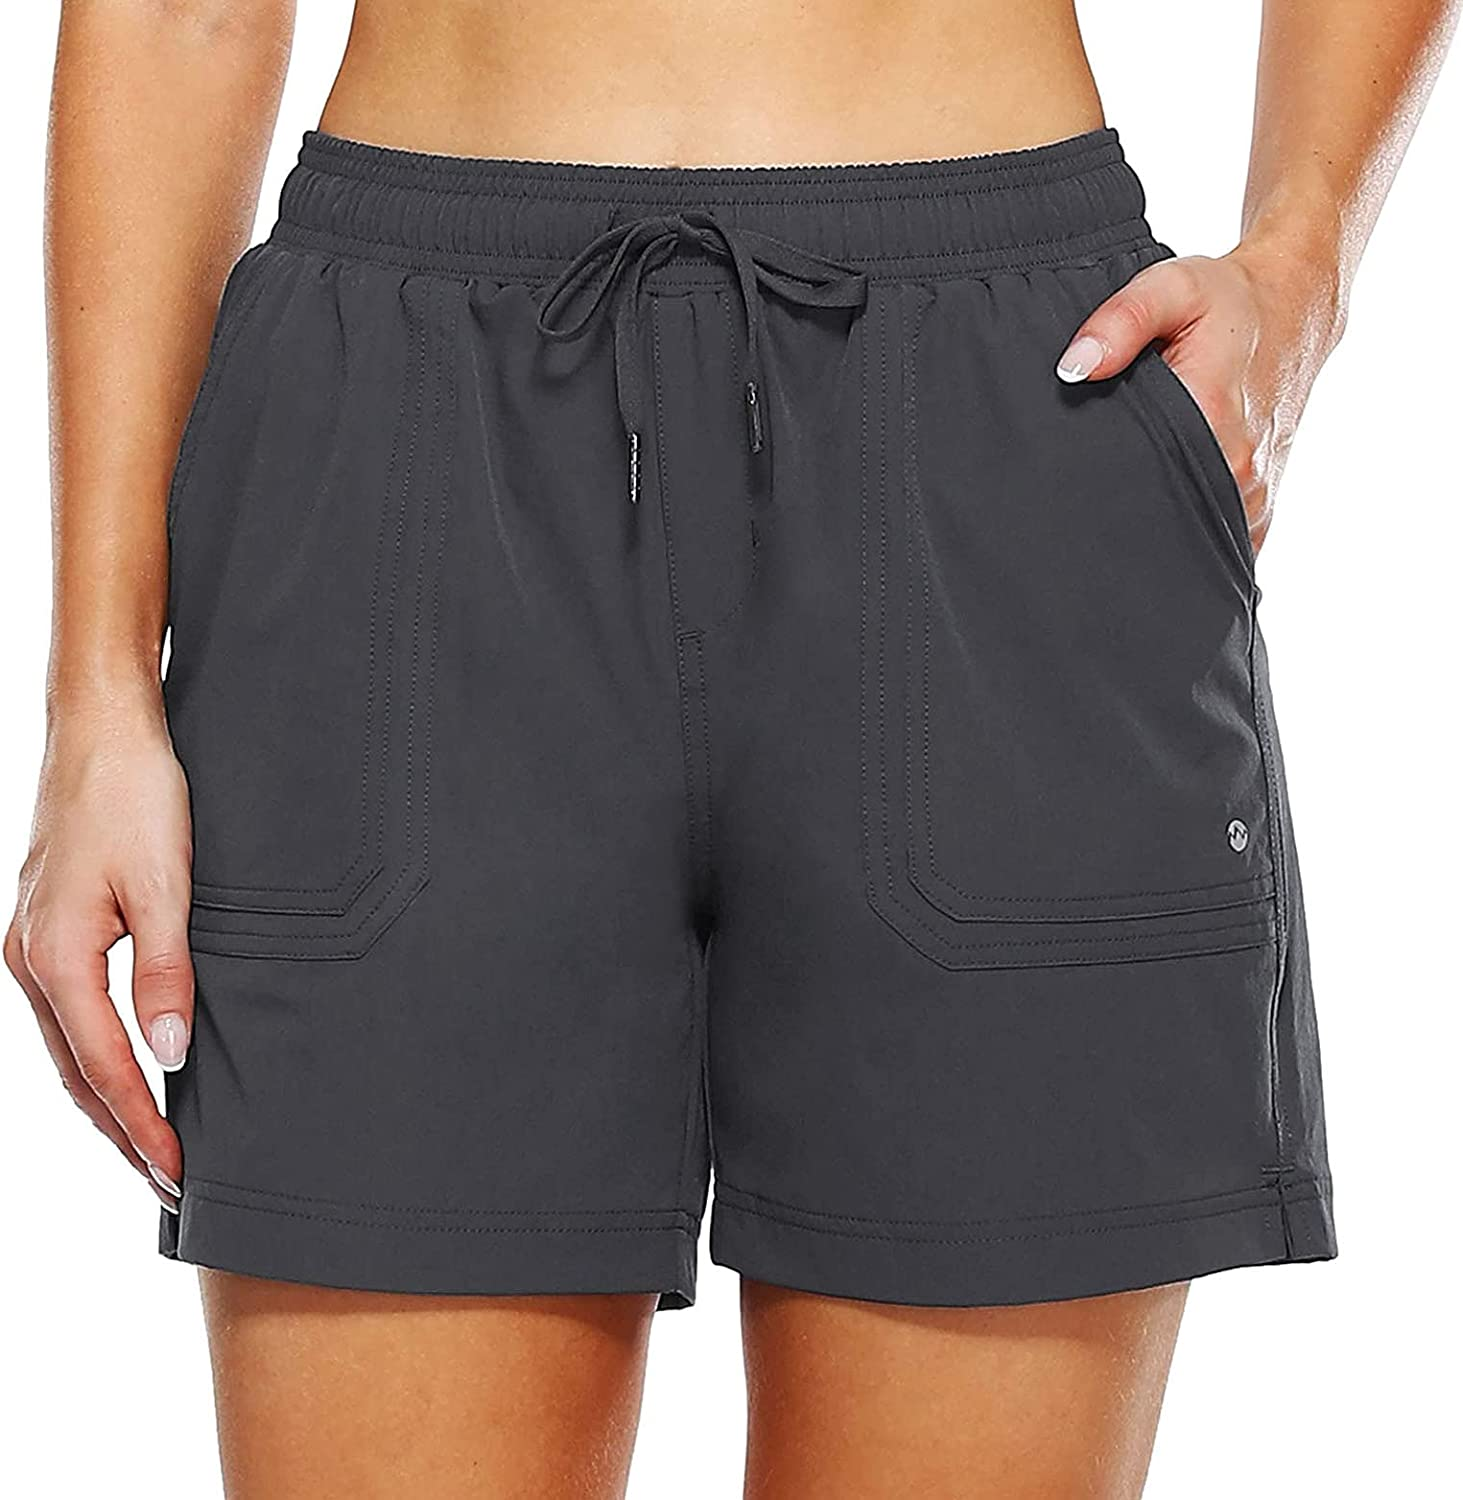 YUNDAN Women's Cycling Louisville-Jefferson County Free shipping anywhere in the nation Mall Shorts Fit Loose Quick Drawstring